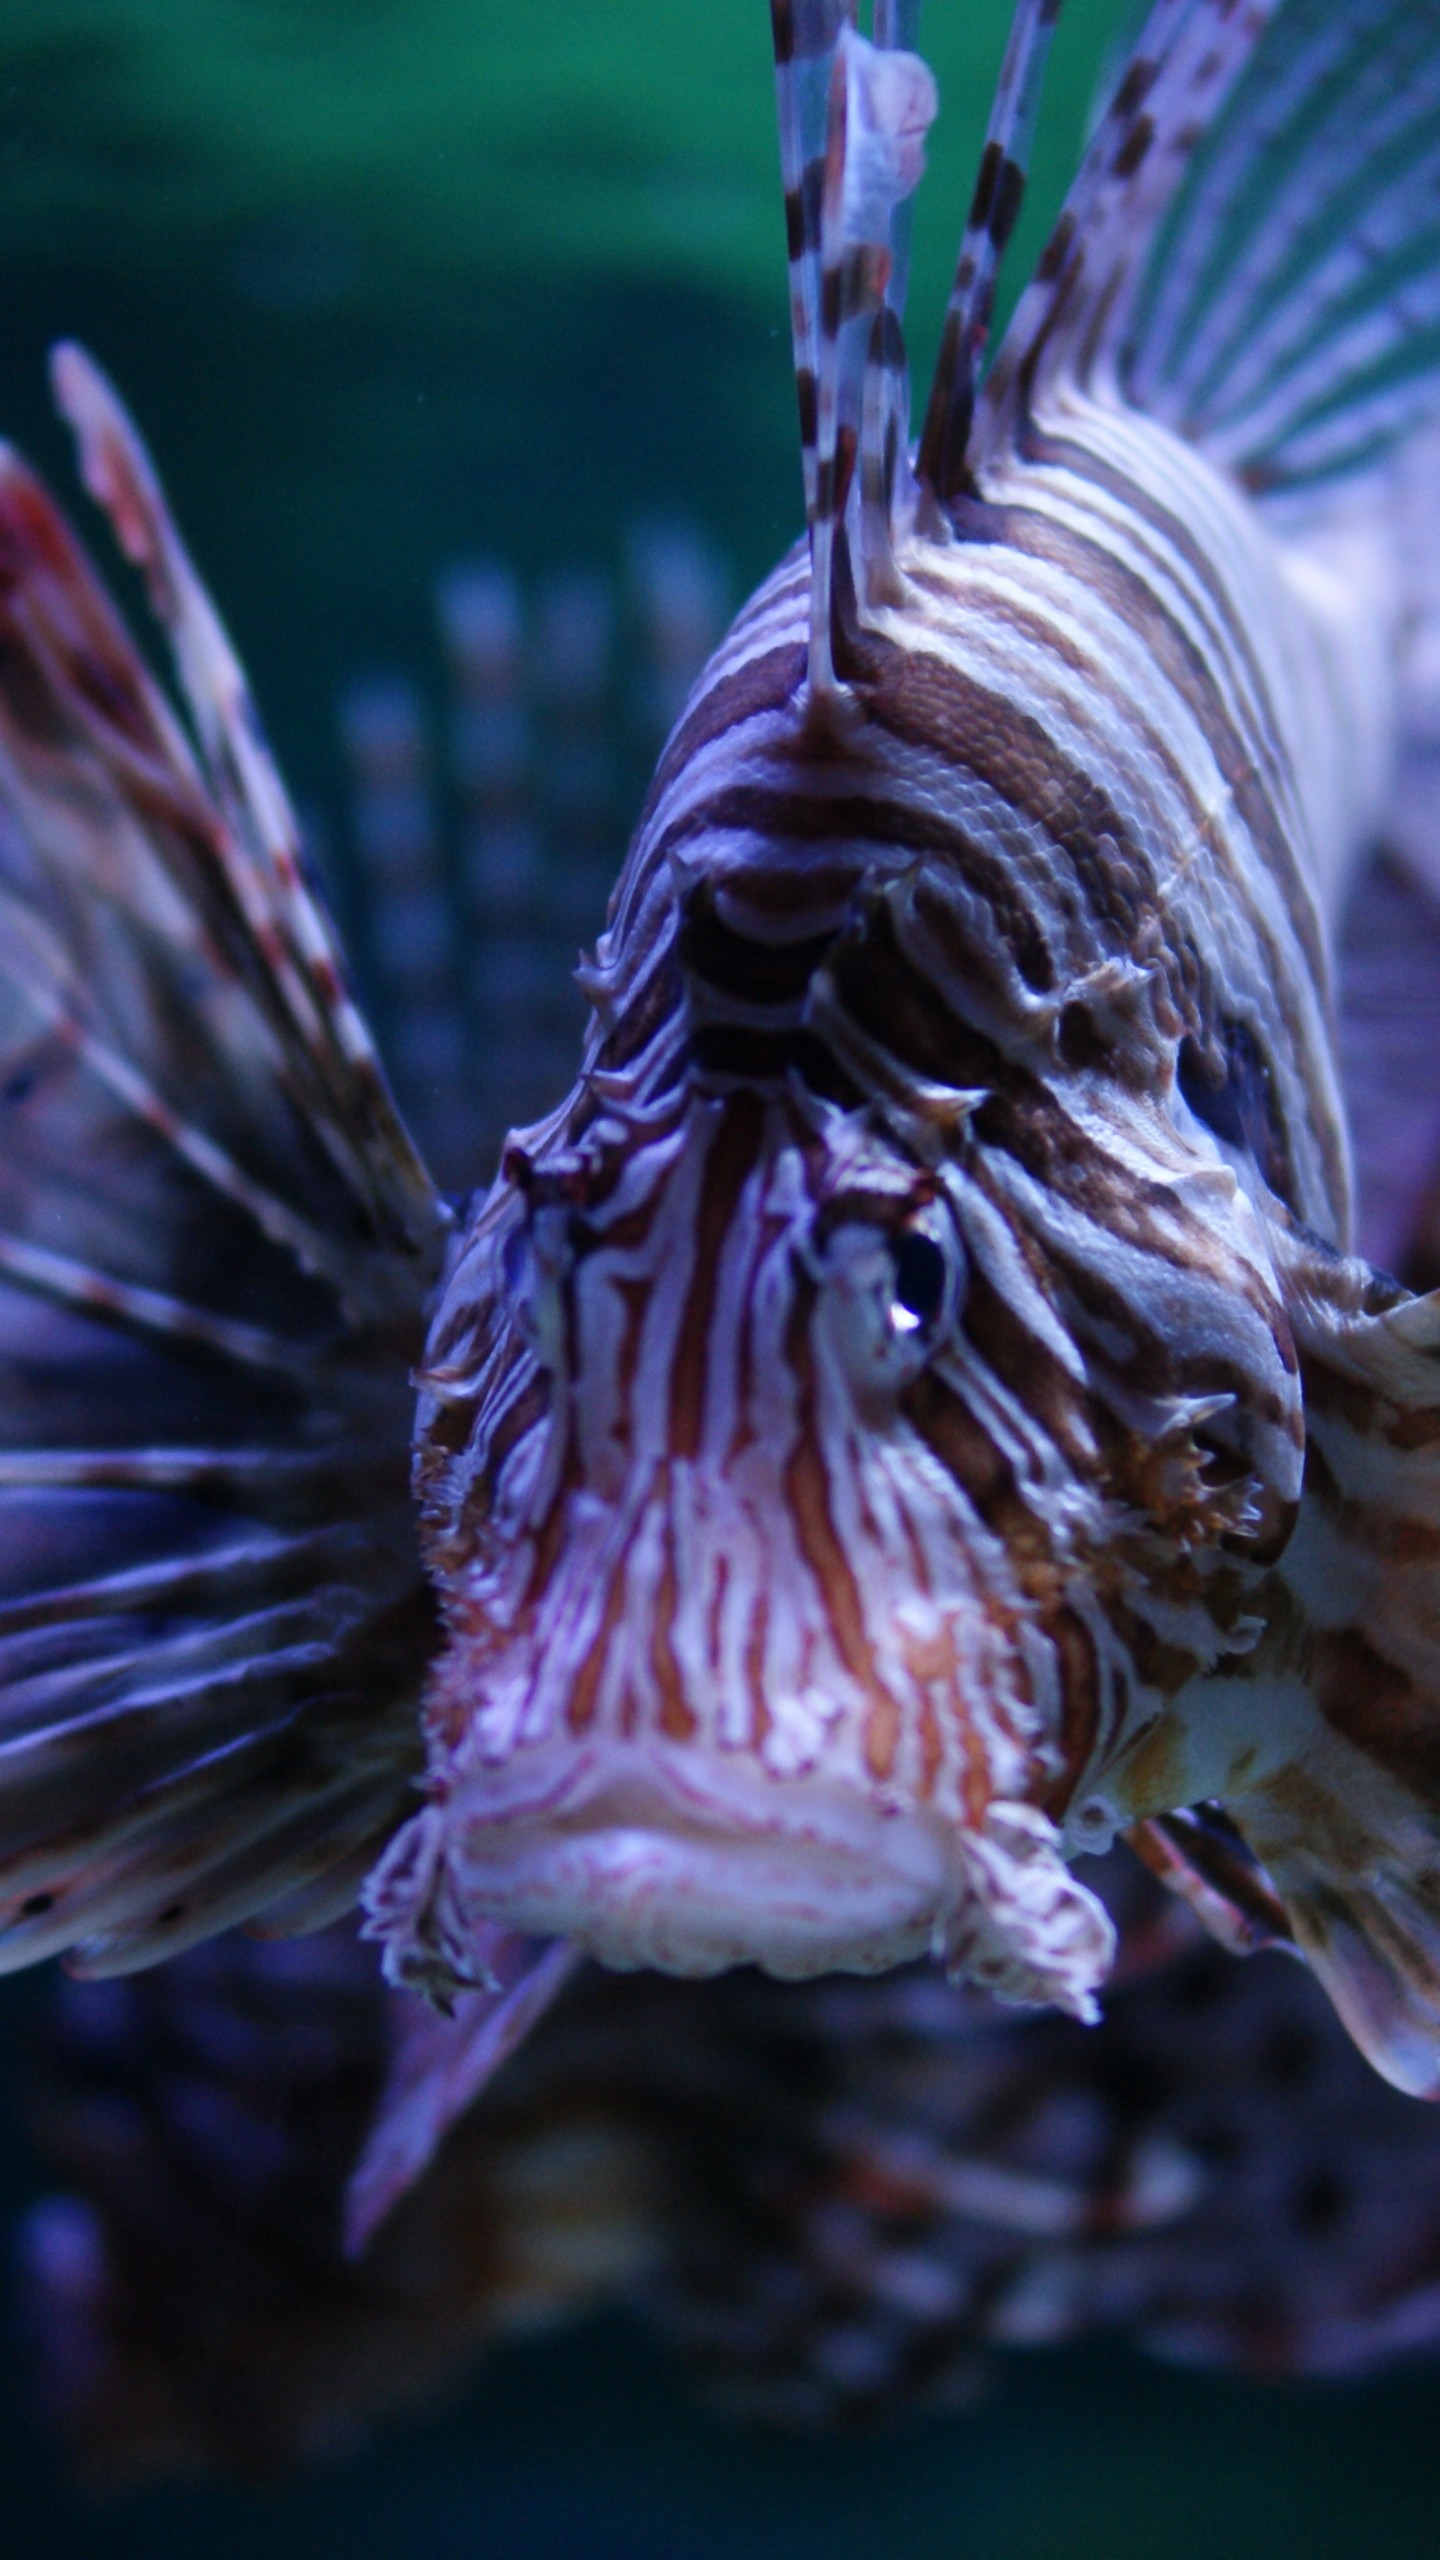 Wallpaper Lionfish 5k 4k Wallpaper Budapest